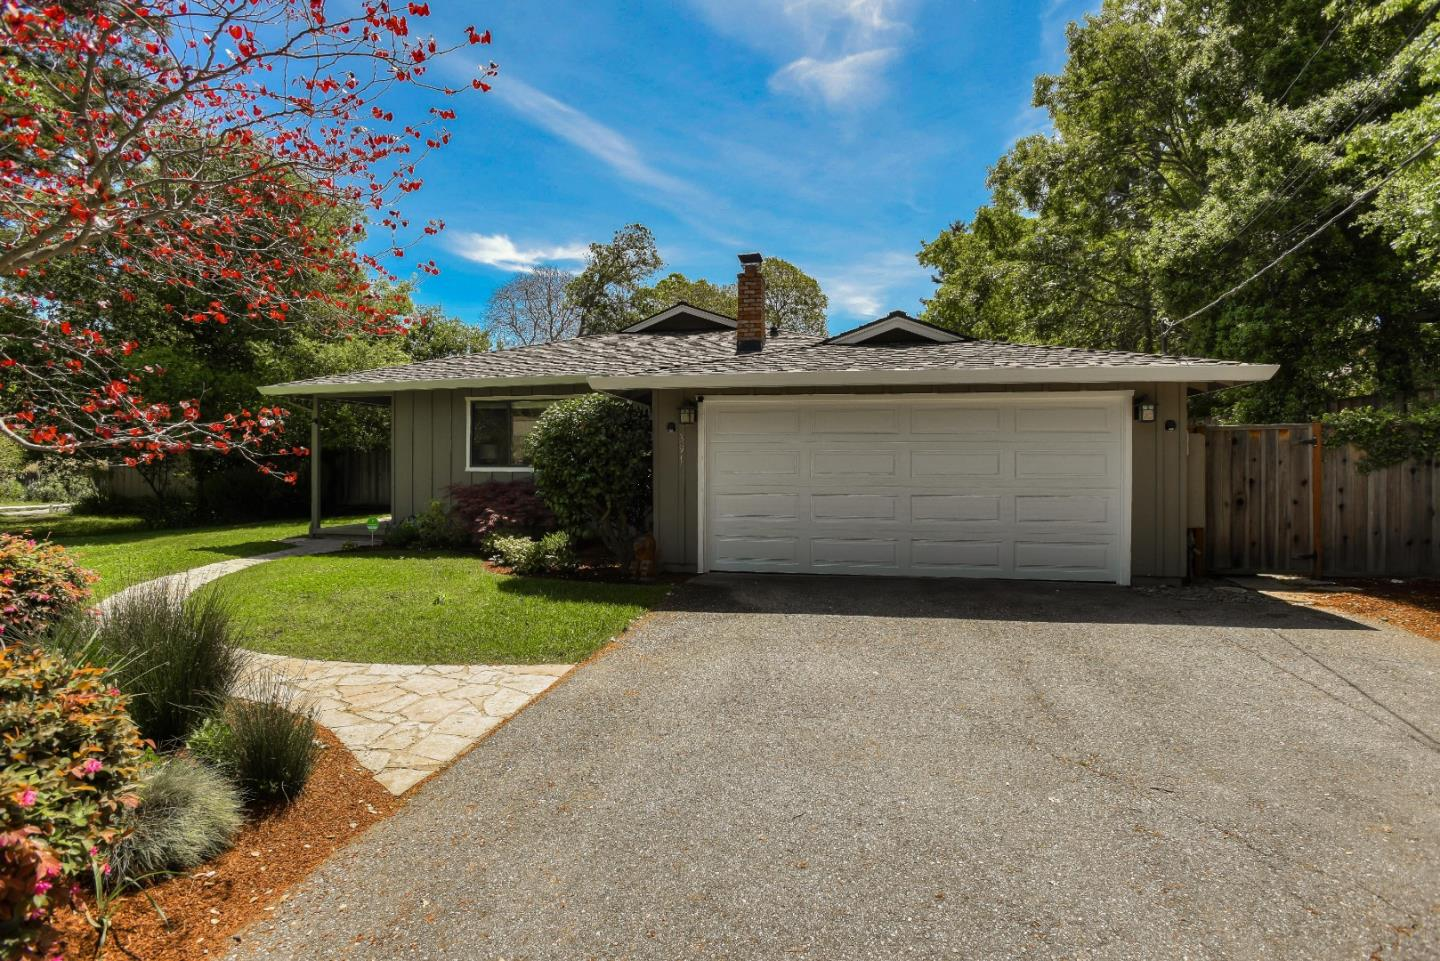 391 Canyon Dr, Portola Valley, CA 94028 - 4 Beds   2 Baths (Sold